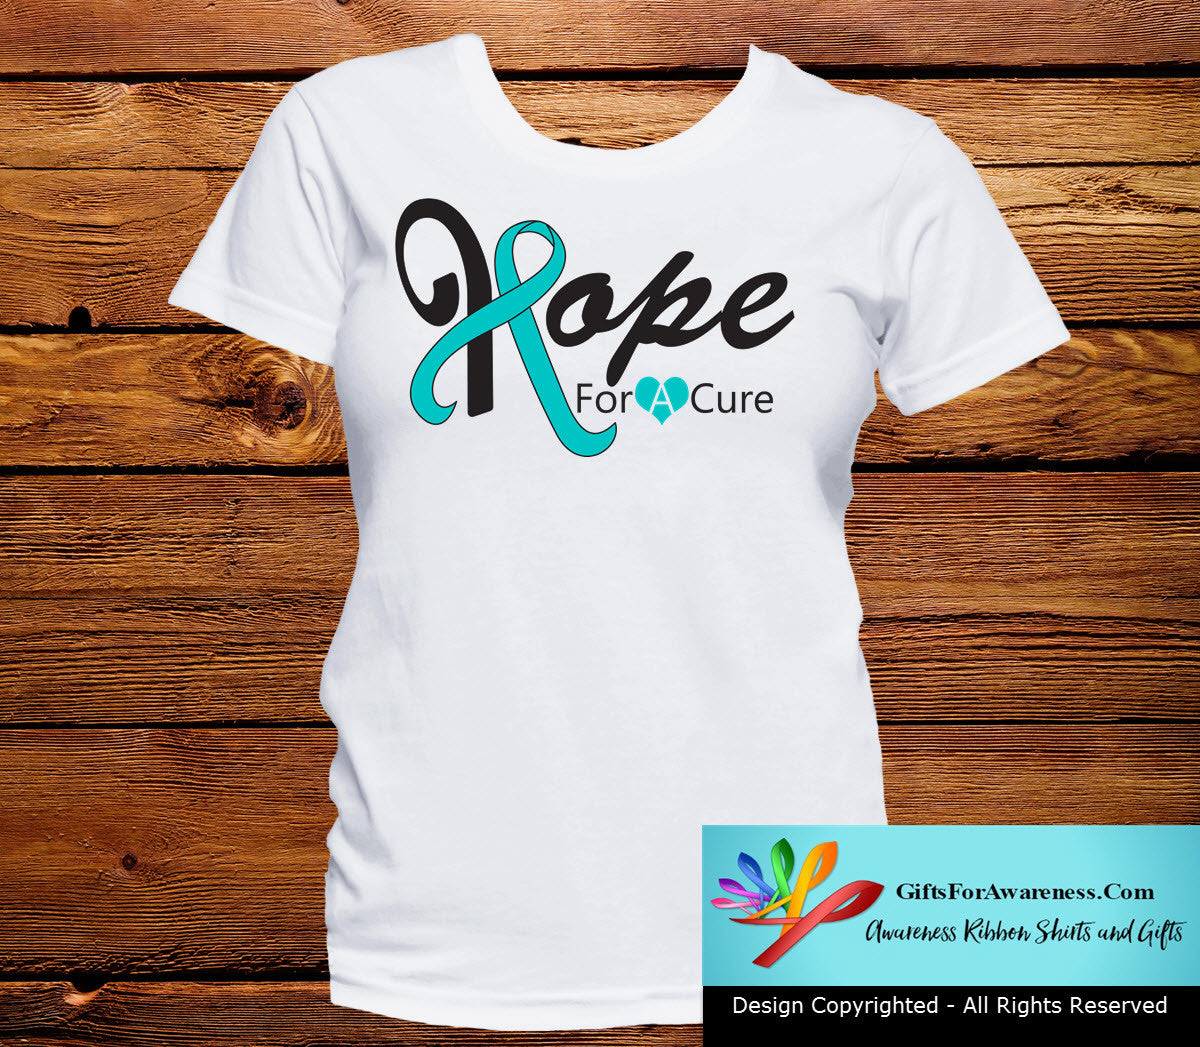 Gynecologic Cancer Hope For A Cure Shirts - GiftsForAwareness